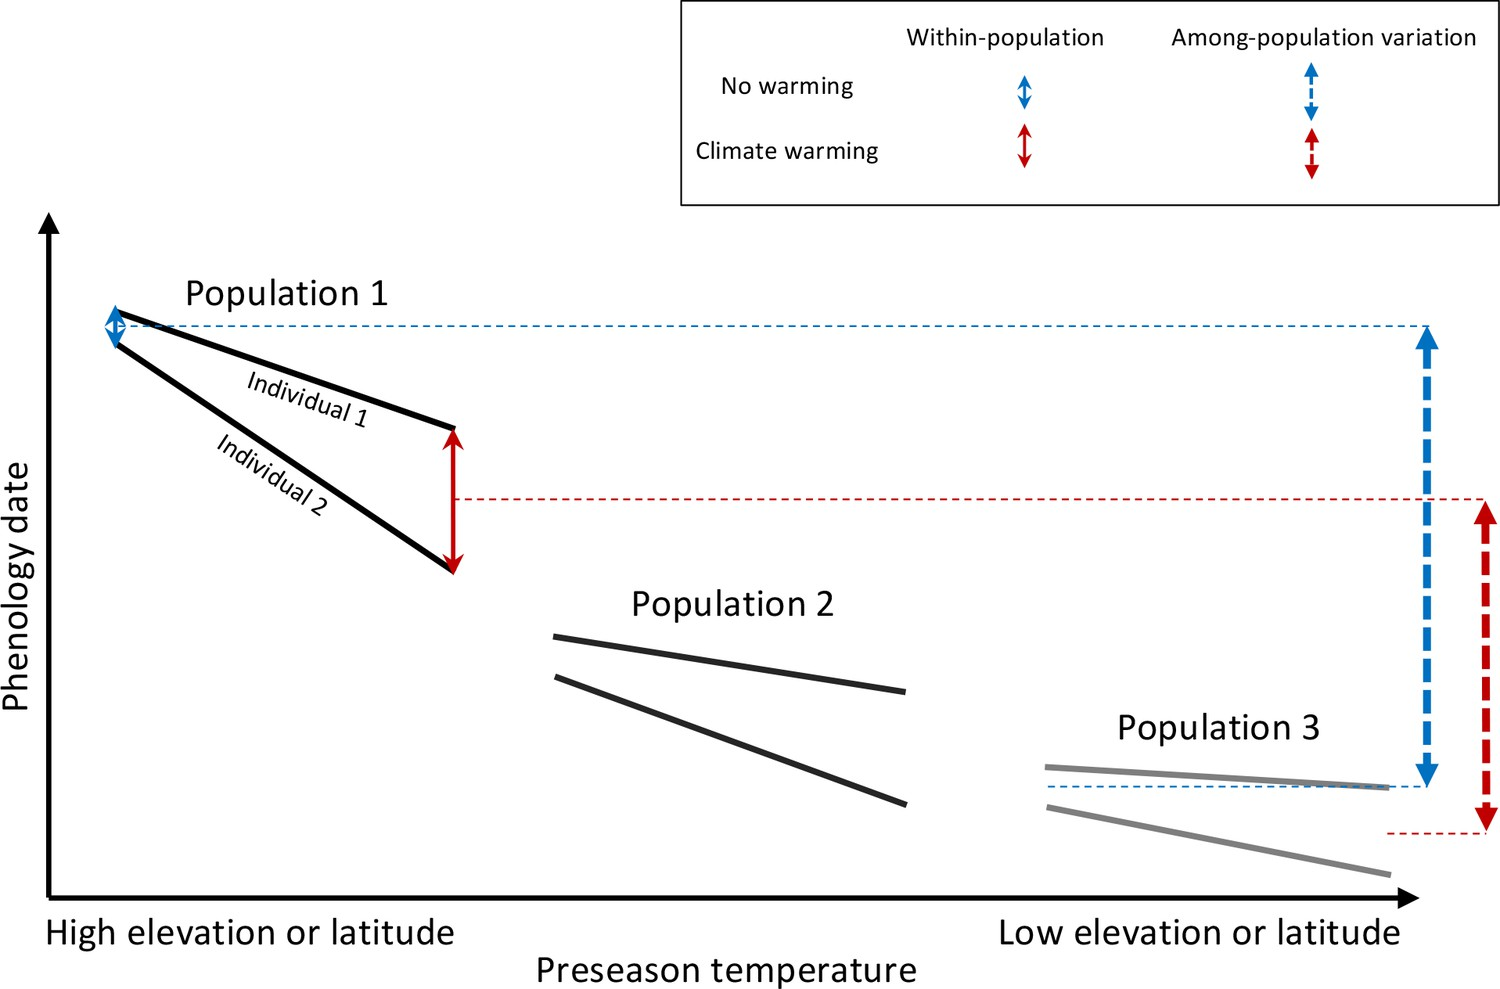 hight resolution of schematic representation of within and among population phenological synchrony in response to climate warming